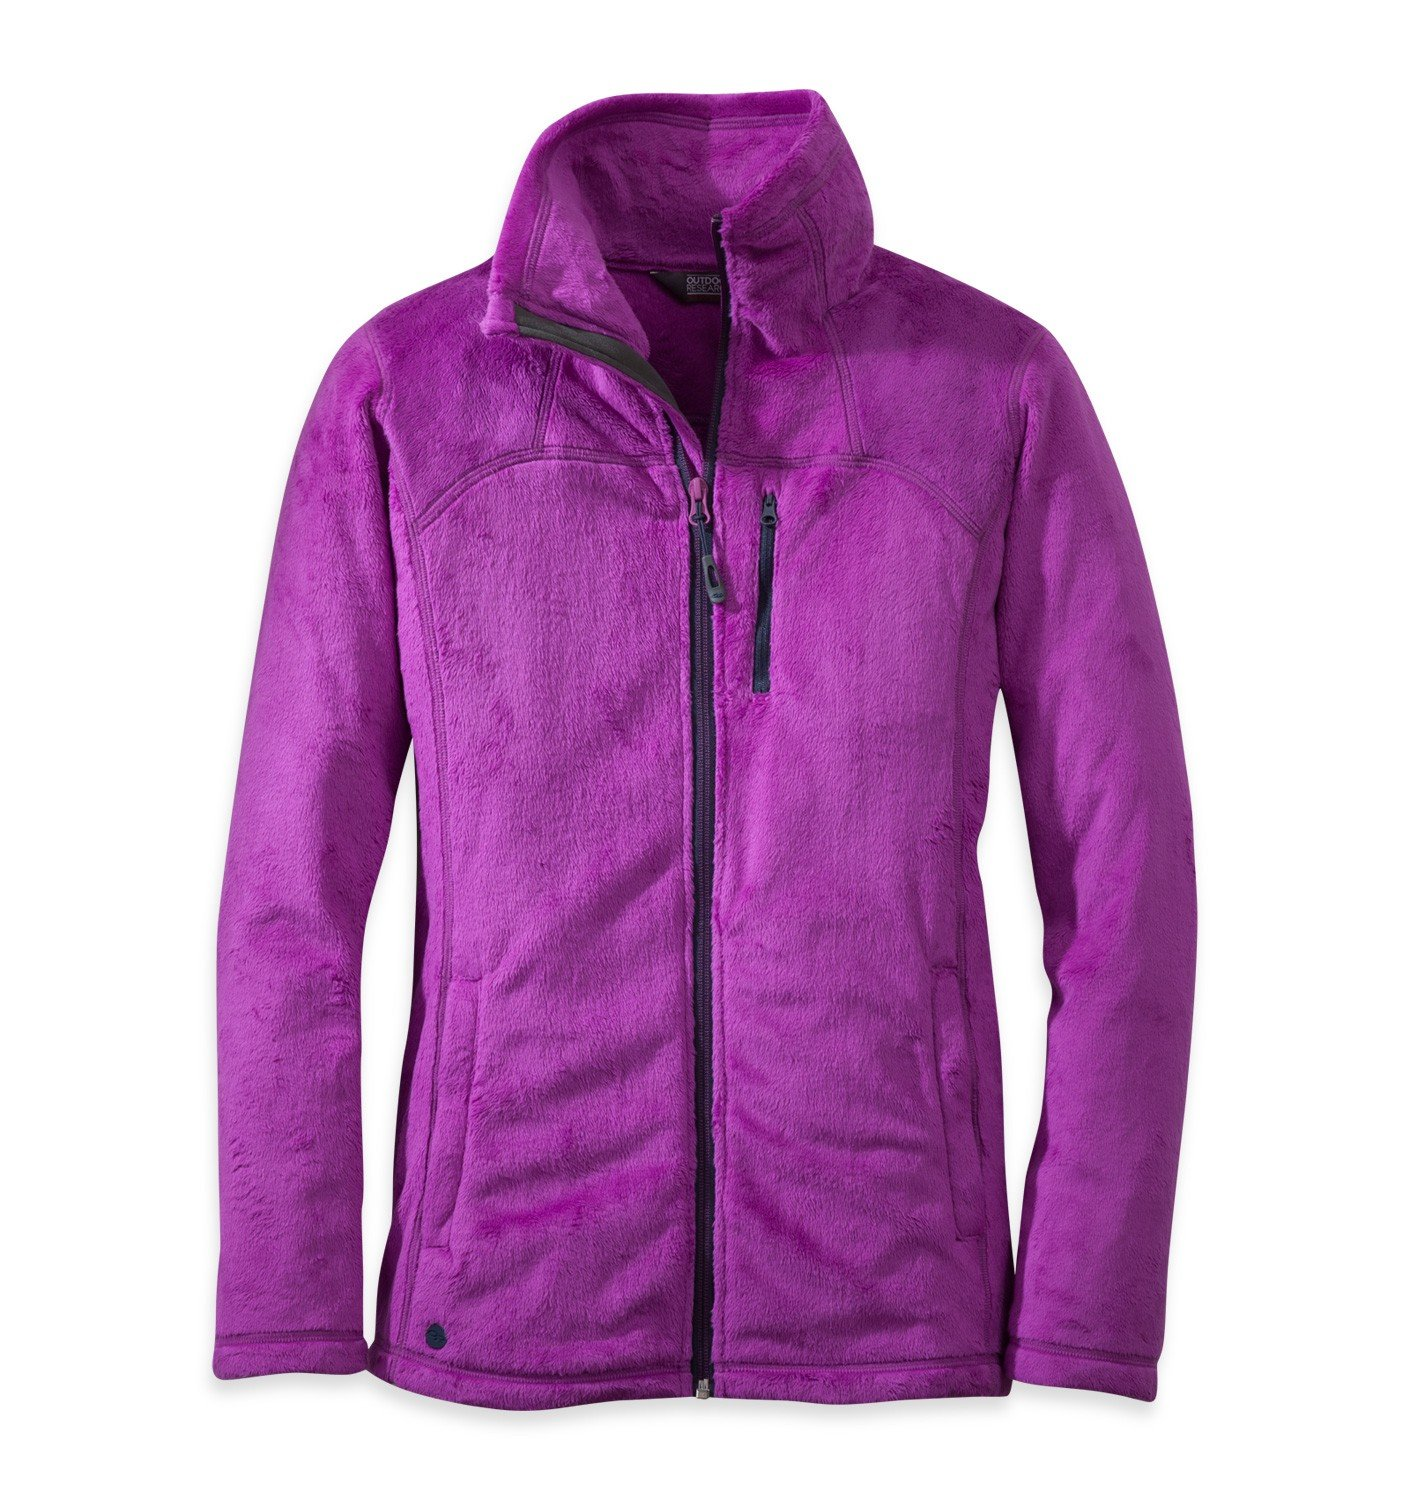 Ultrapurple Night Outdoor Research Women's Casia Jacket